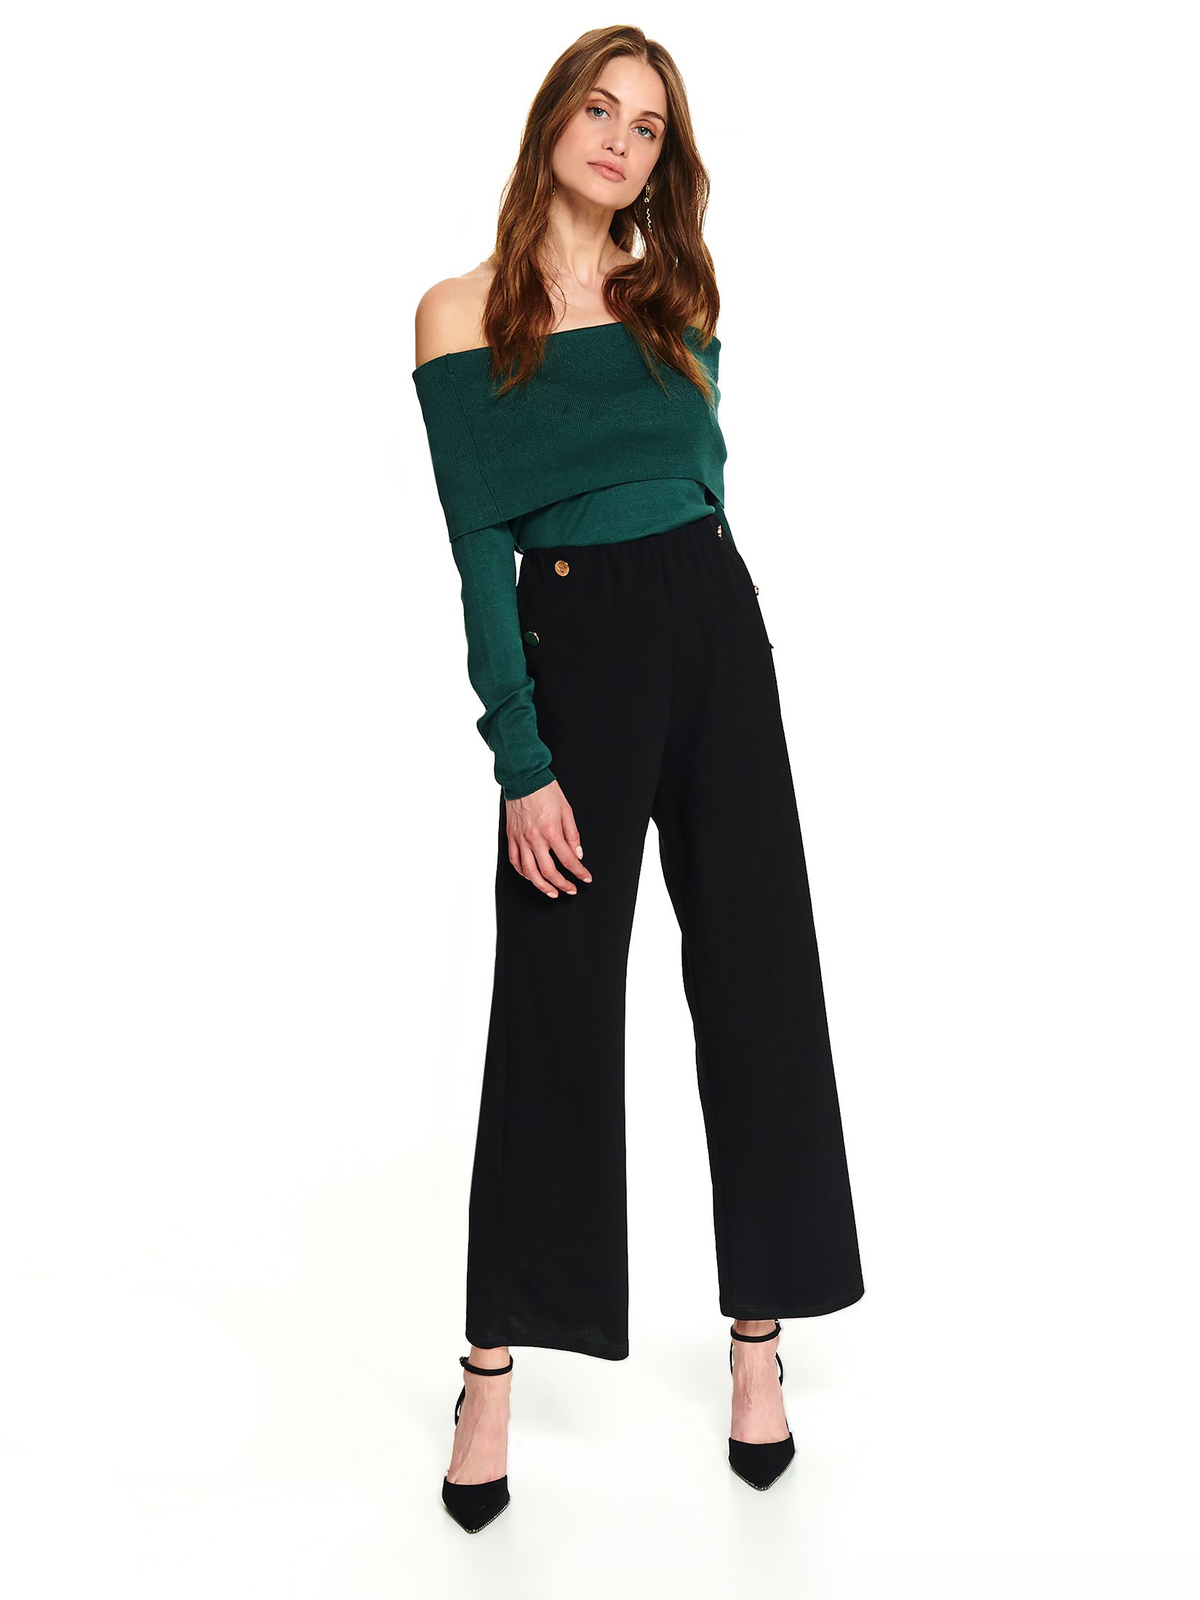 Green casual short cut tented sweater with long sleeves and naked shoulders